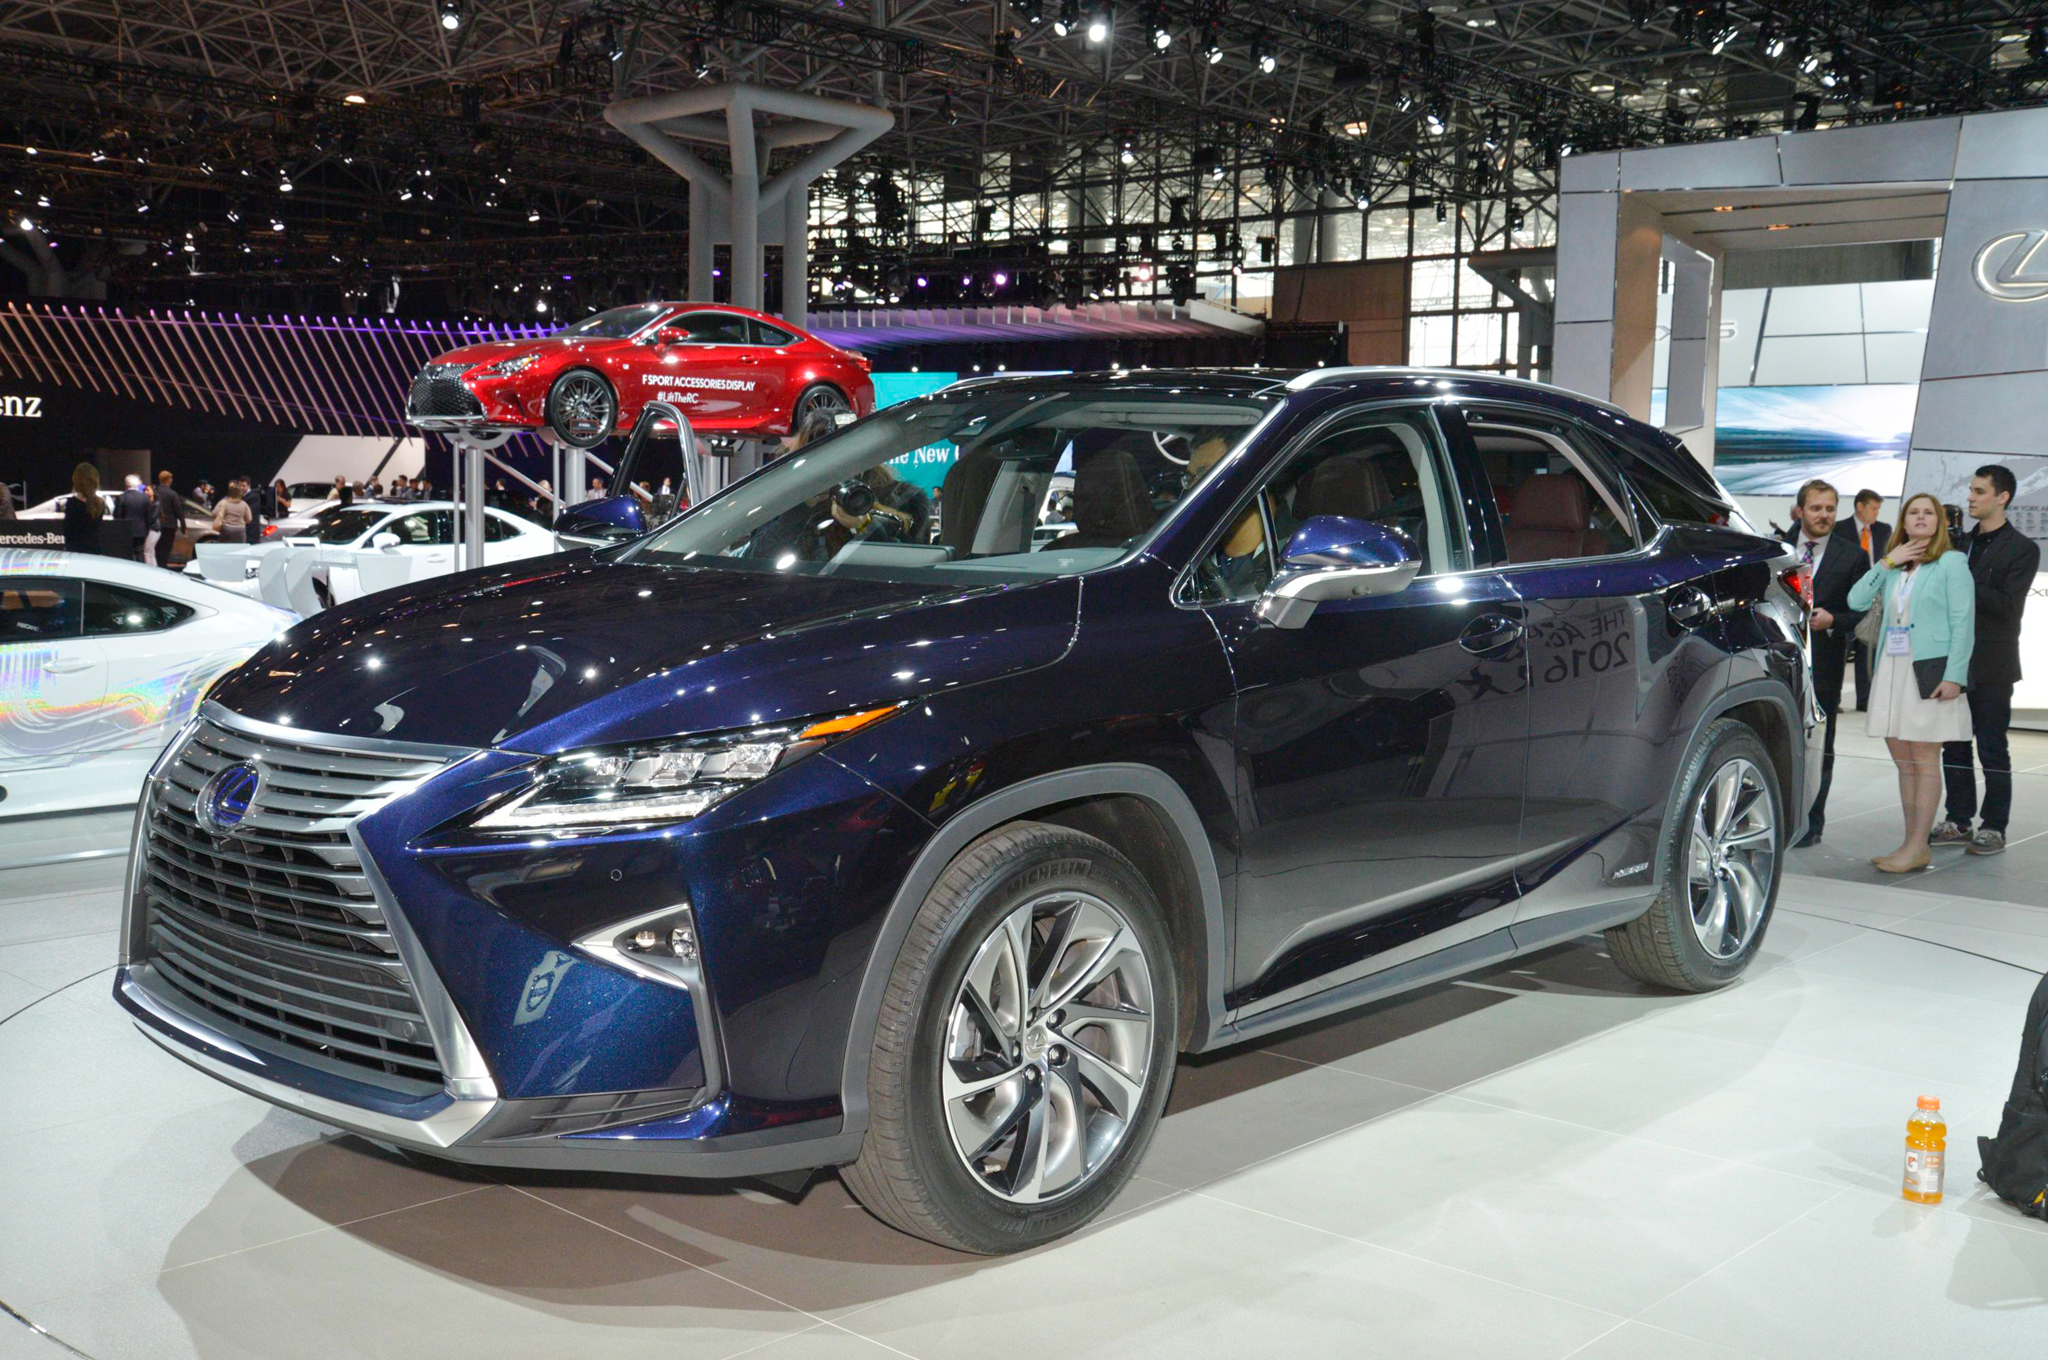 https://enthusiastnetwork.s3.amazonaws.com/uploads/sites/5/2015/03/2016-Lexus-RX-450h-front-three-quarter.jpg?impolicy=entryimage